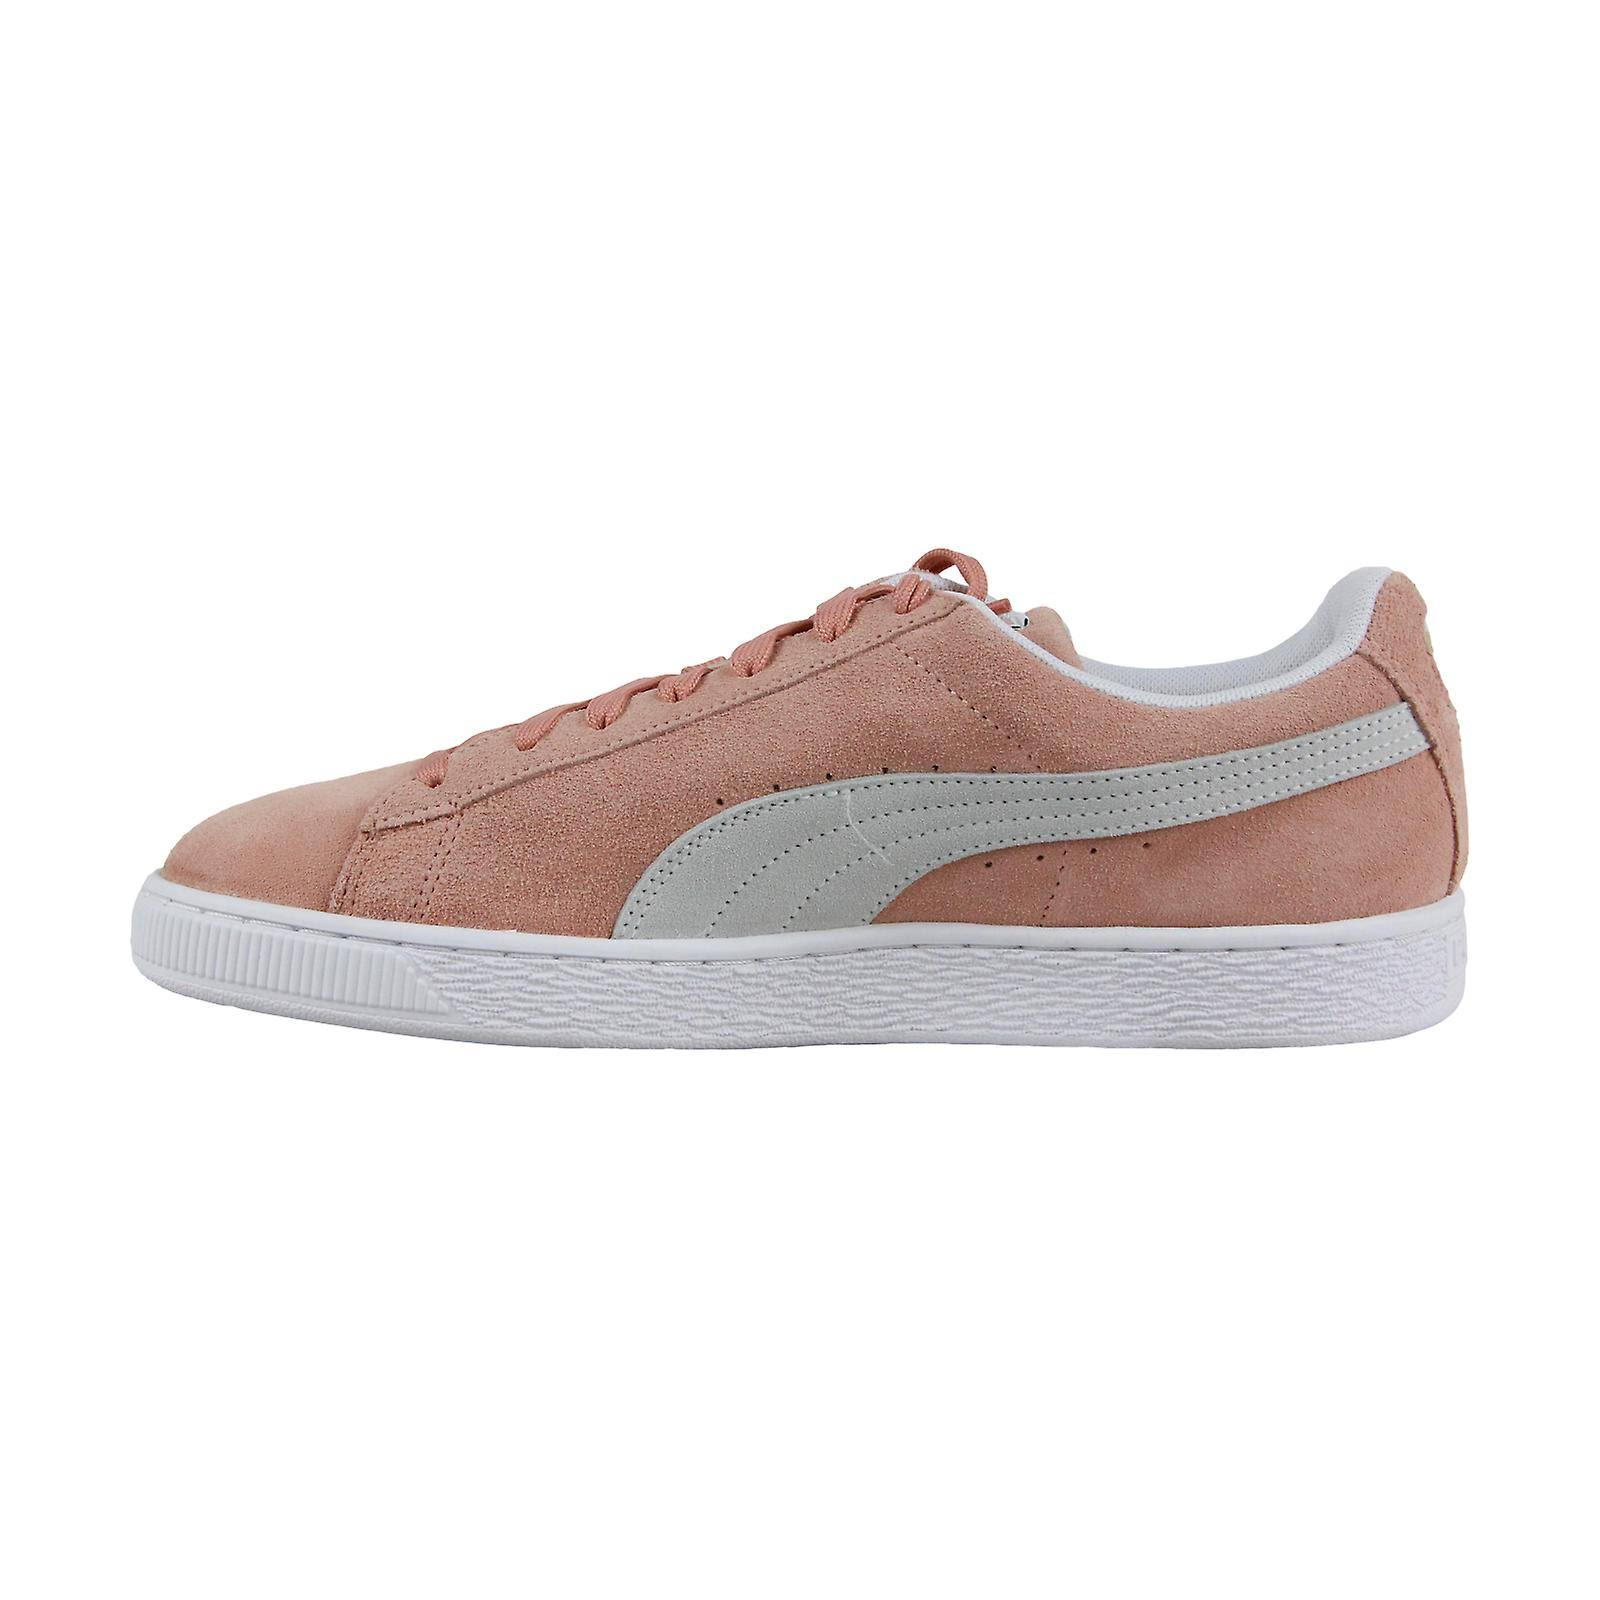 Pink Suede ClaClay Up White Puma Heren Lace Sneakers Muted Classic Schoenen hdstQr